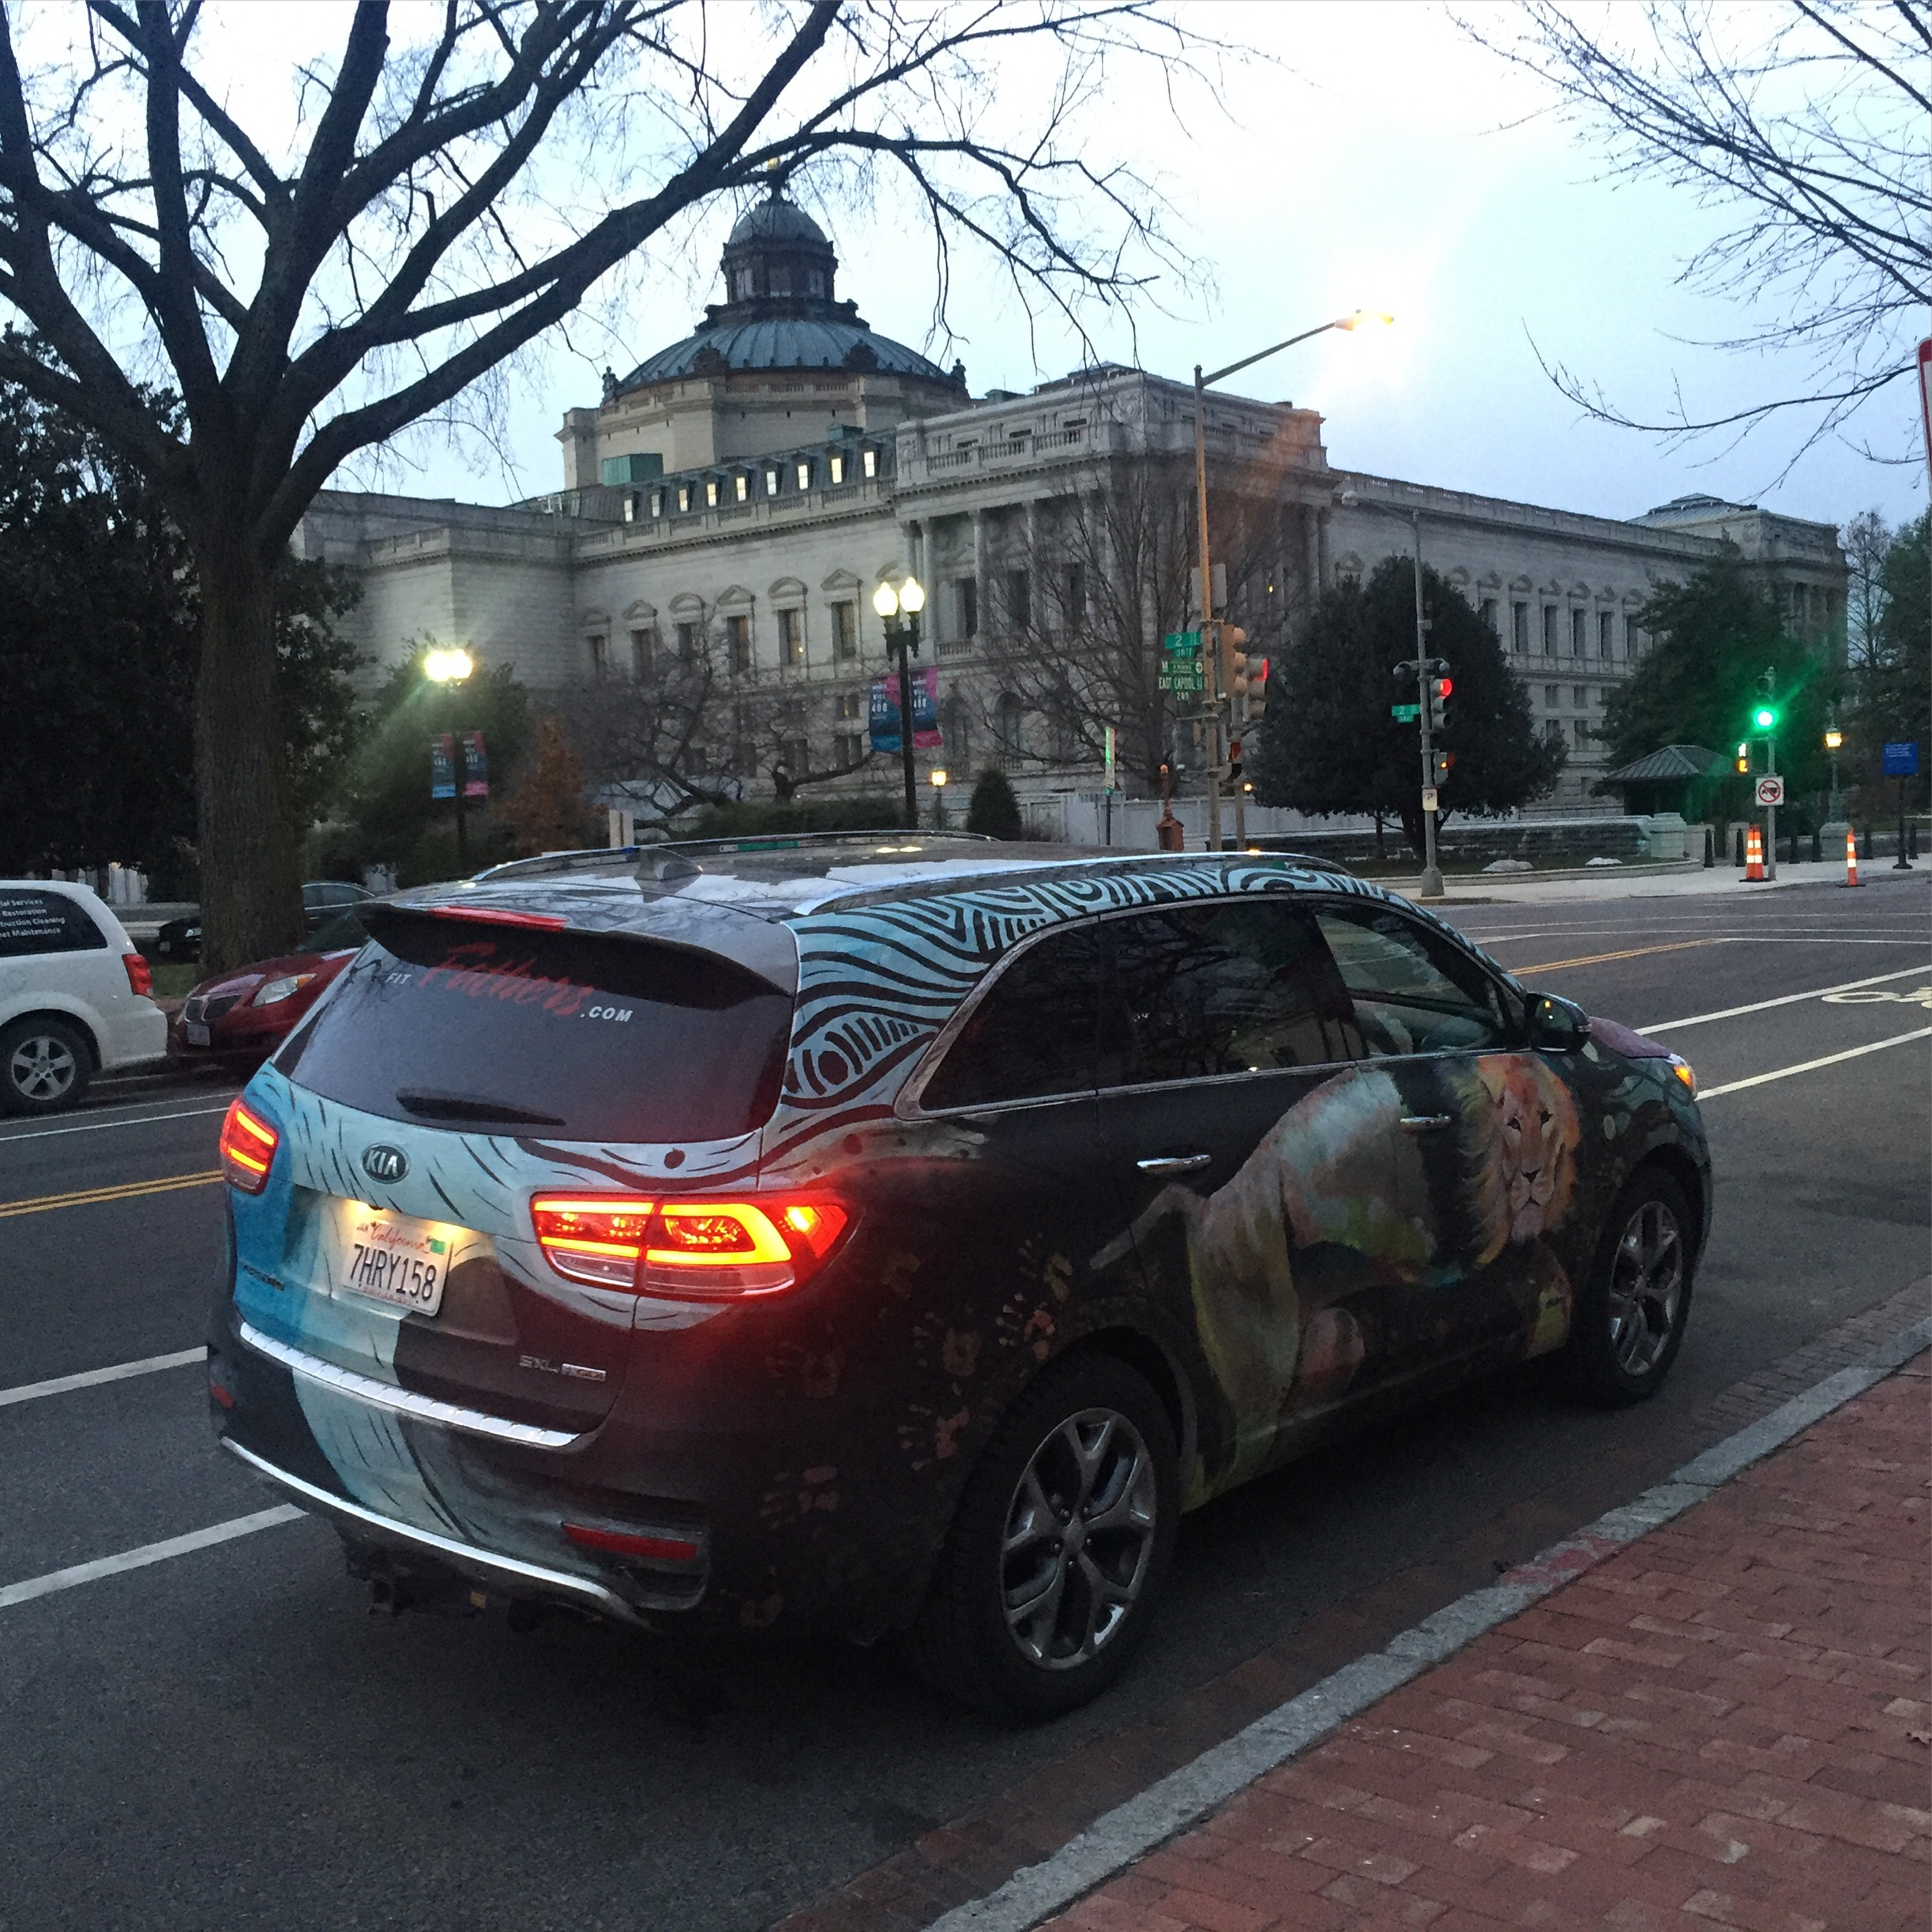 Kia Sorento Art Car - Library of Congress